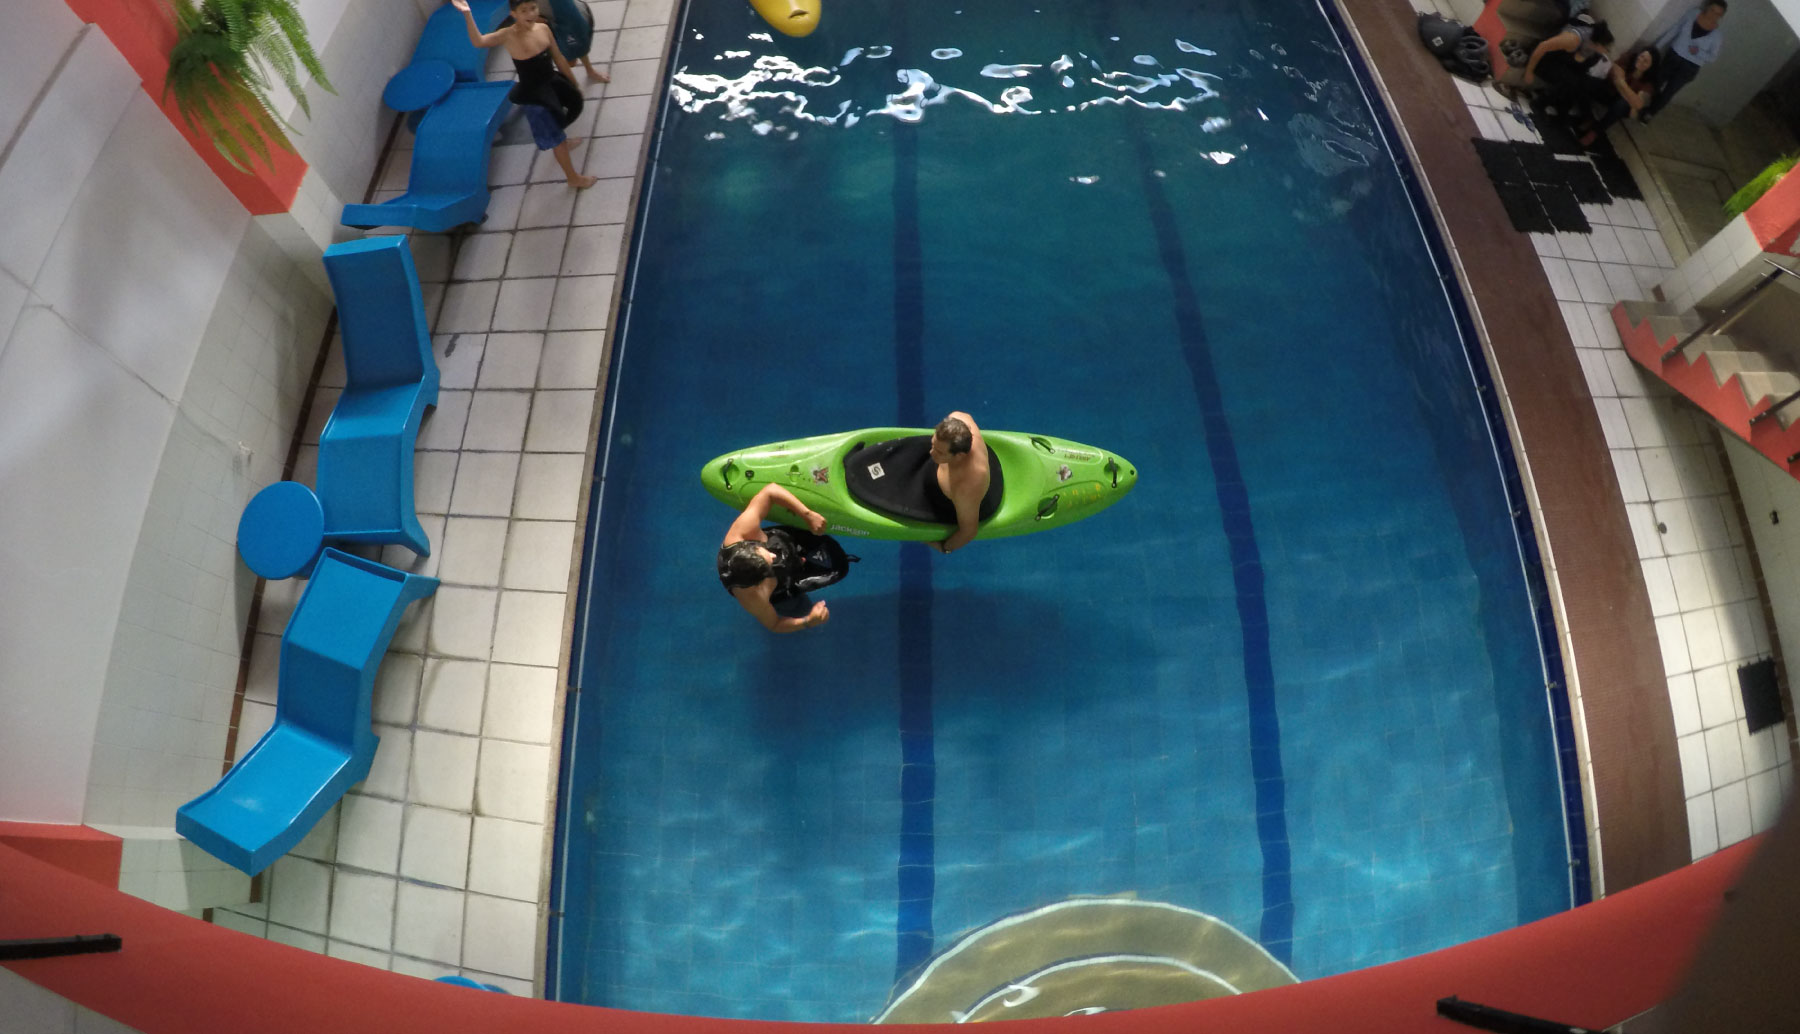 Kayak School lesson in a pool